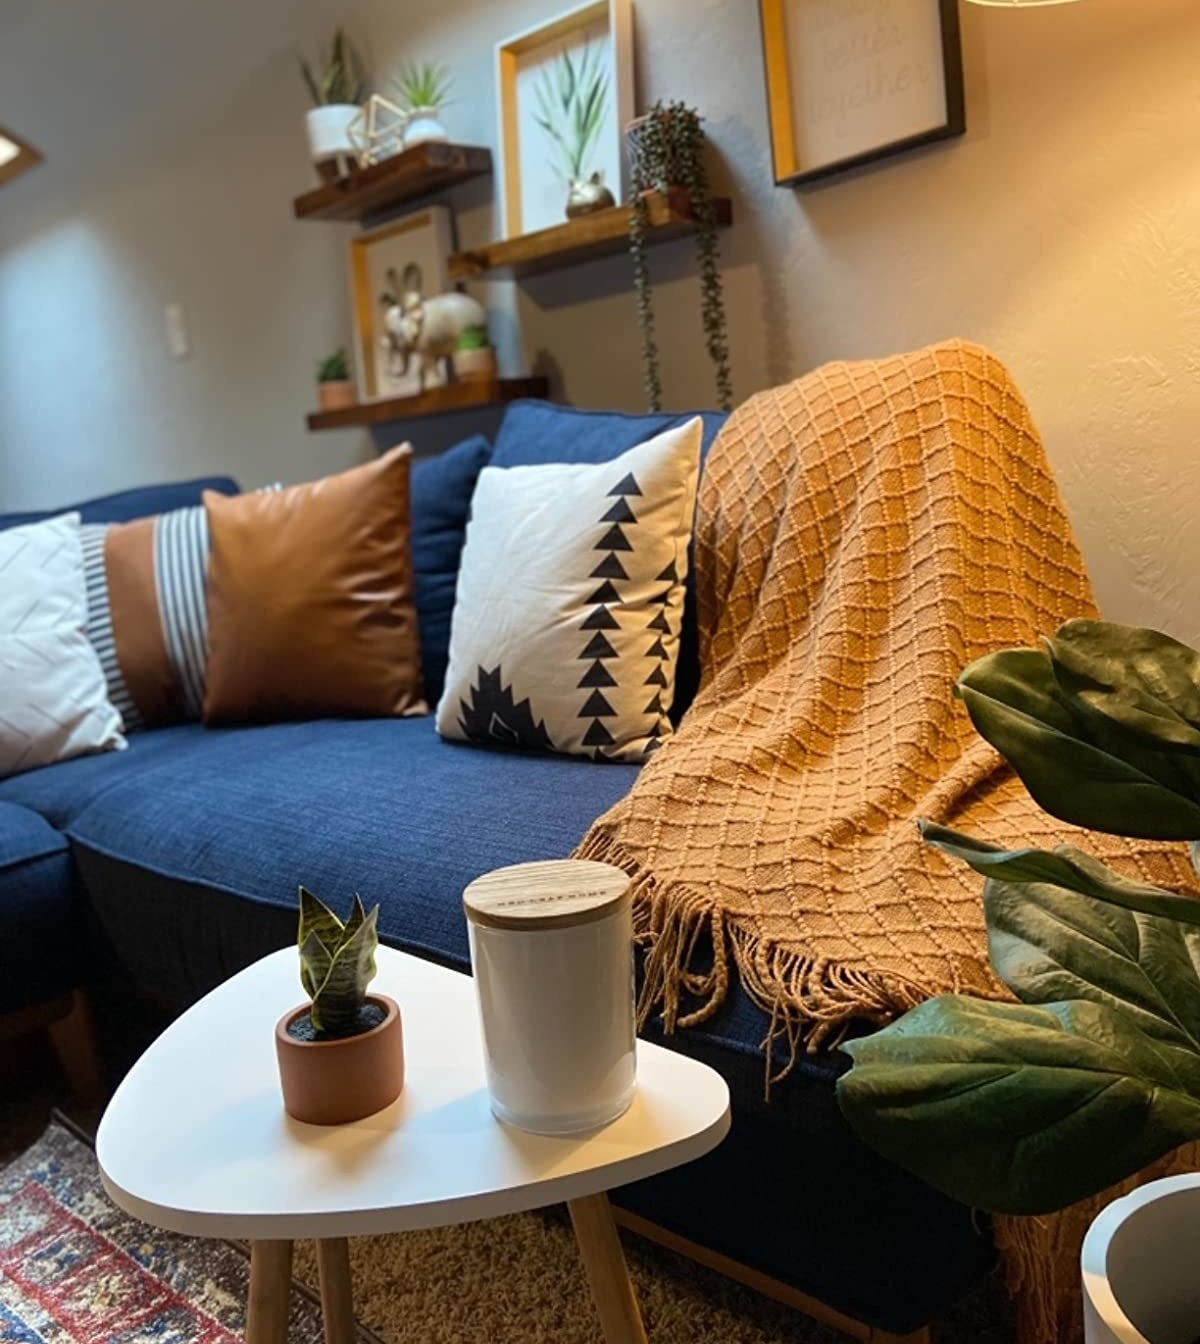 reviewer image of a decorated living room and the cashew Graced Soft Luxuries Throw Blanket draped on the couch